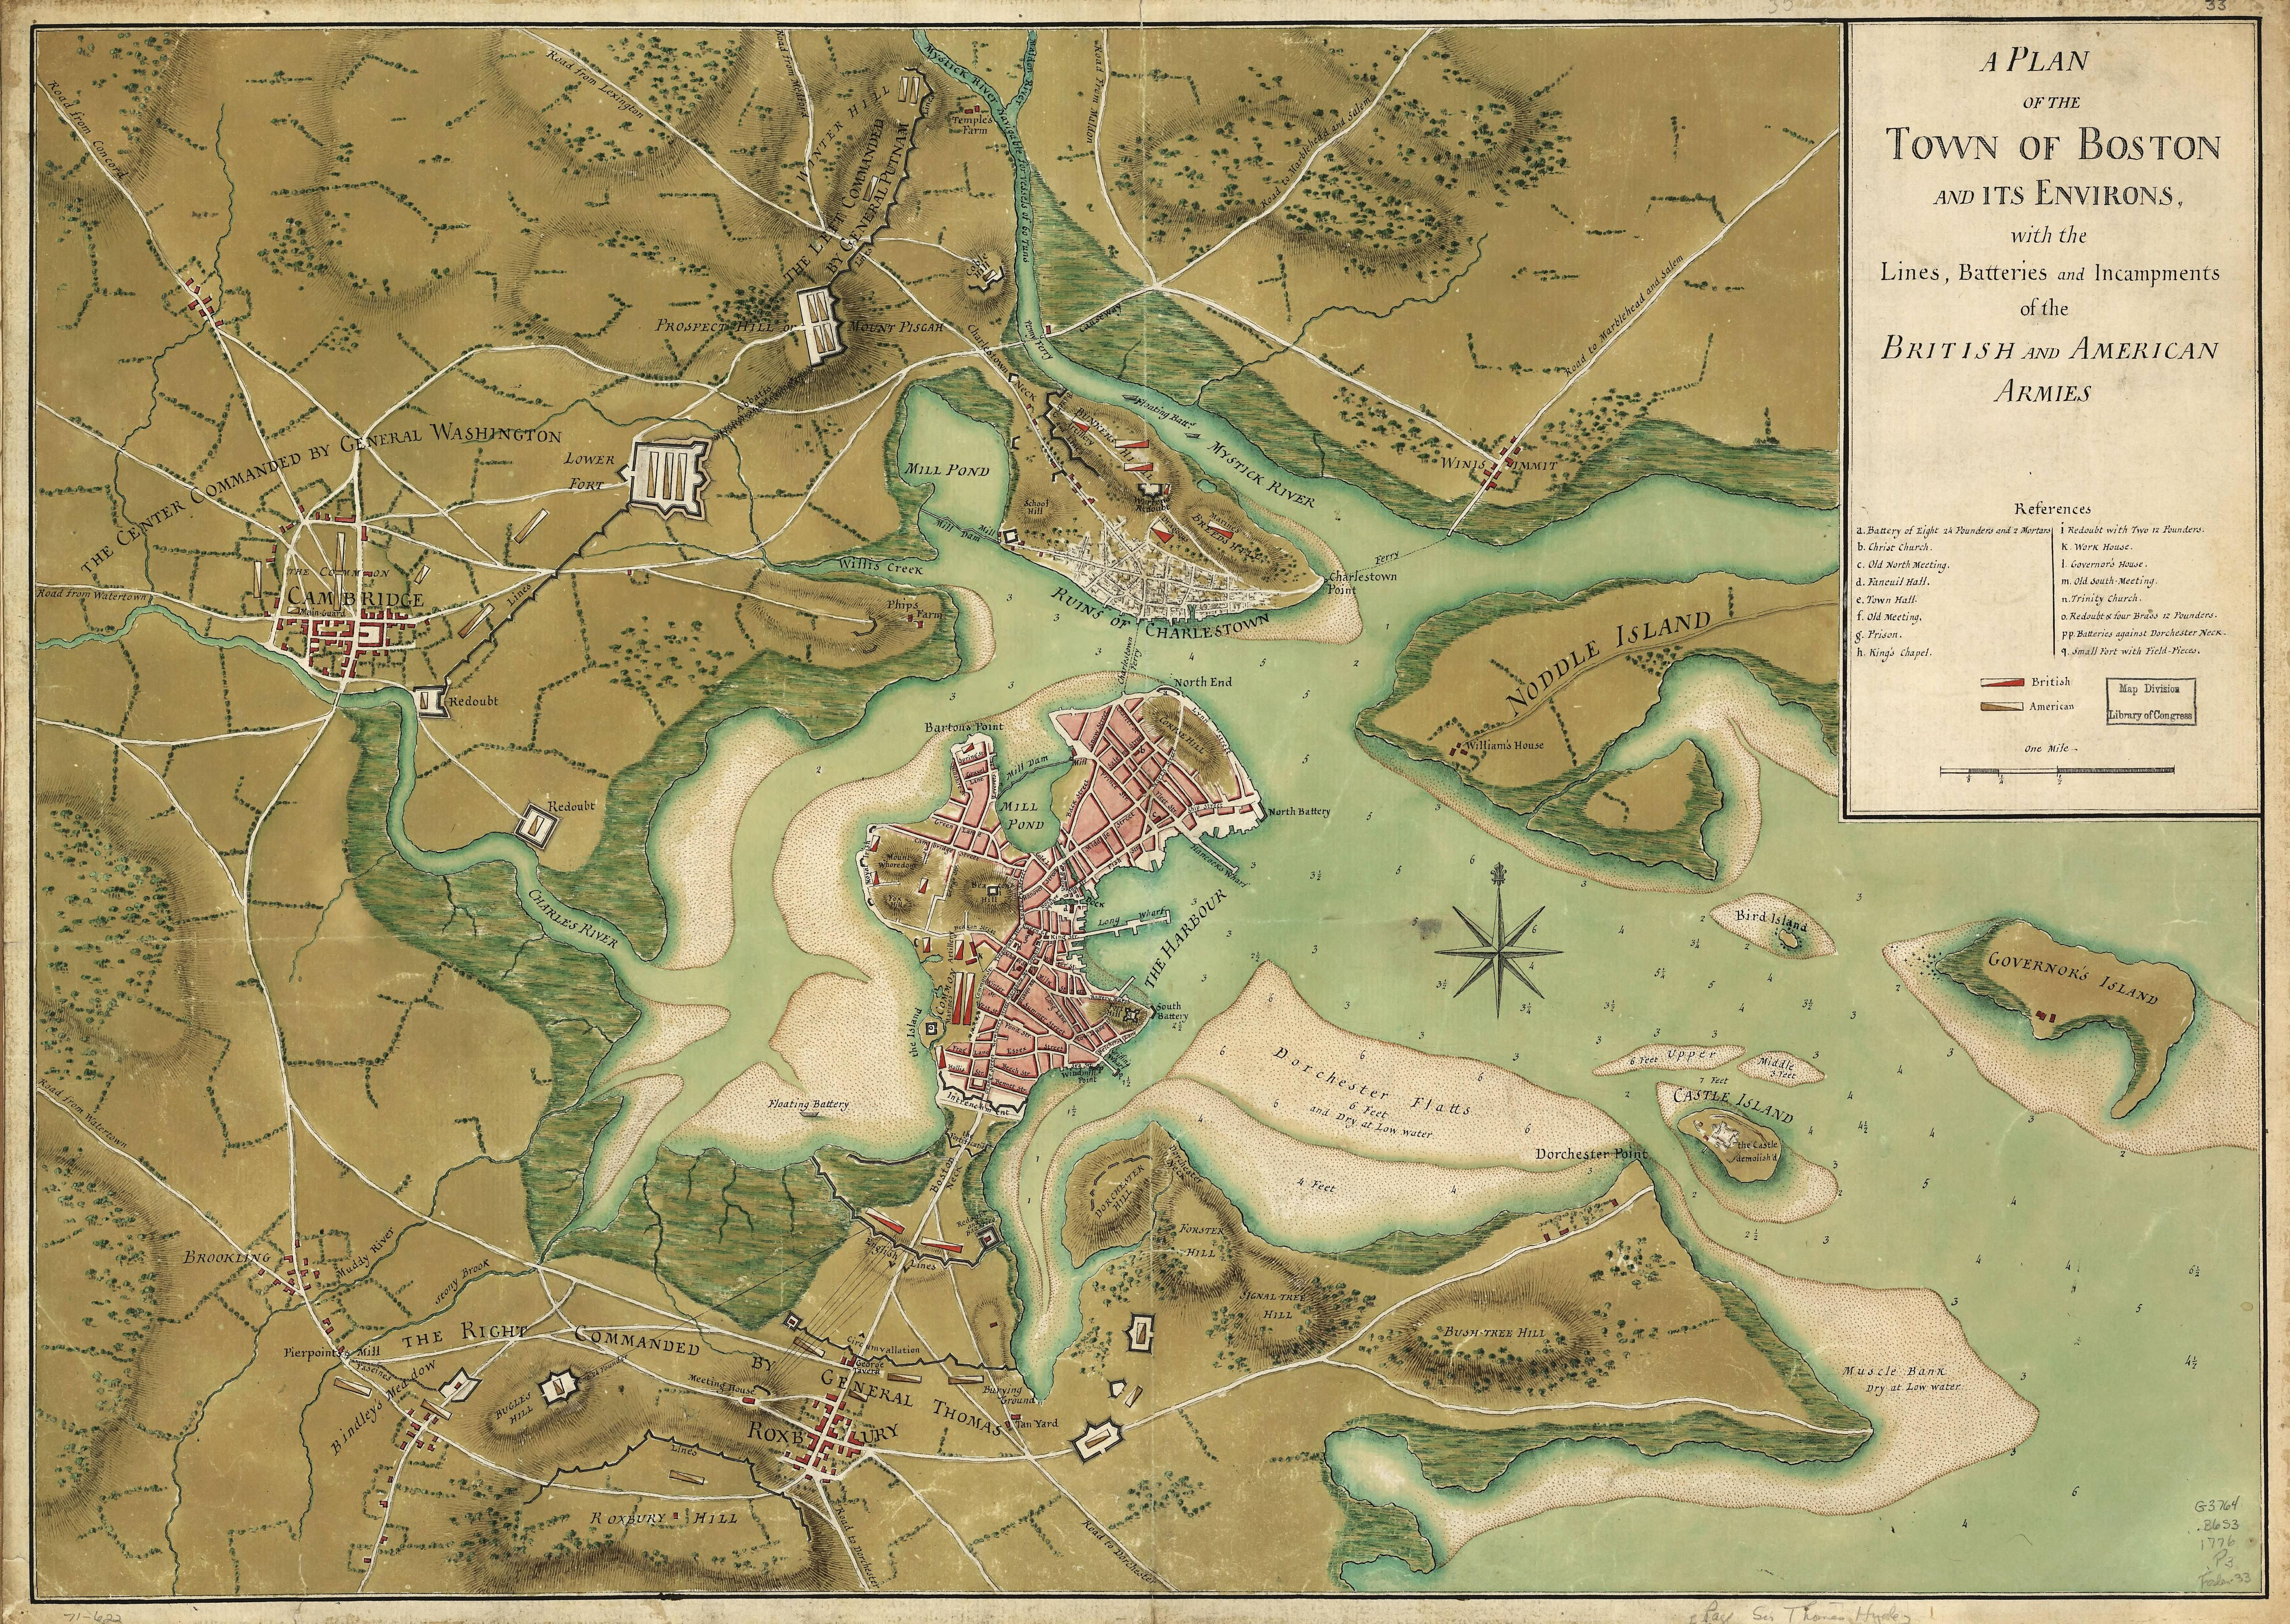 1776 map of Boston and surrounding areas during the Siege of ... Map Of Boston Revolutionary War on map of boston streets during the revolution, map of boston rhode island, map of boston scotland, map of boston 1776, map of boston 17th century, map of boston during the boston massacre, map of boston art, map of boston united states, map of boston massachusetts, map of boston colonial, map of boston england, map of boston 1800s, map of boston cemeteries, map of revolutionary battles, map of patriot during american revolution victory,